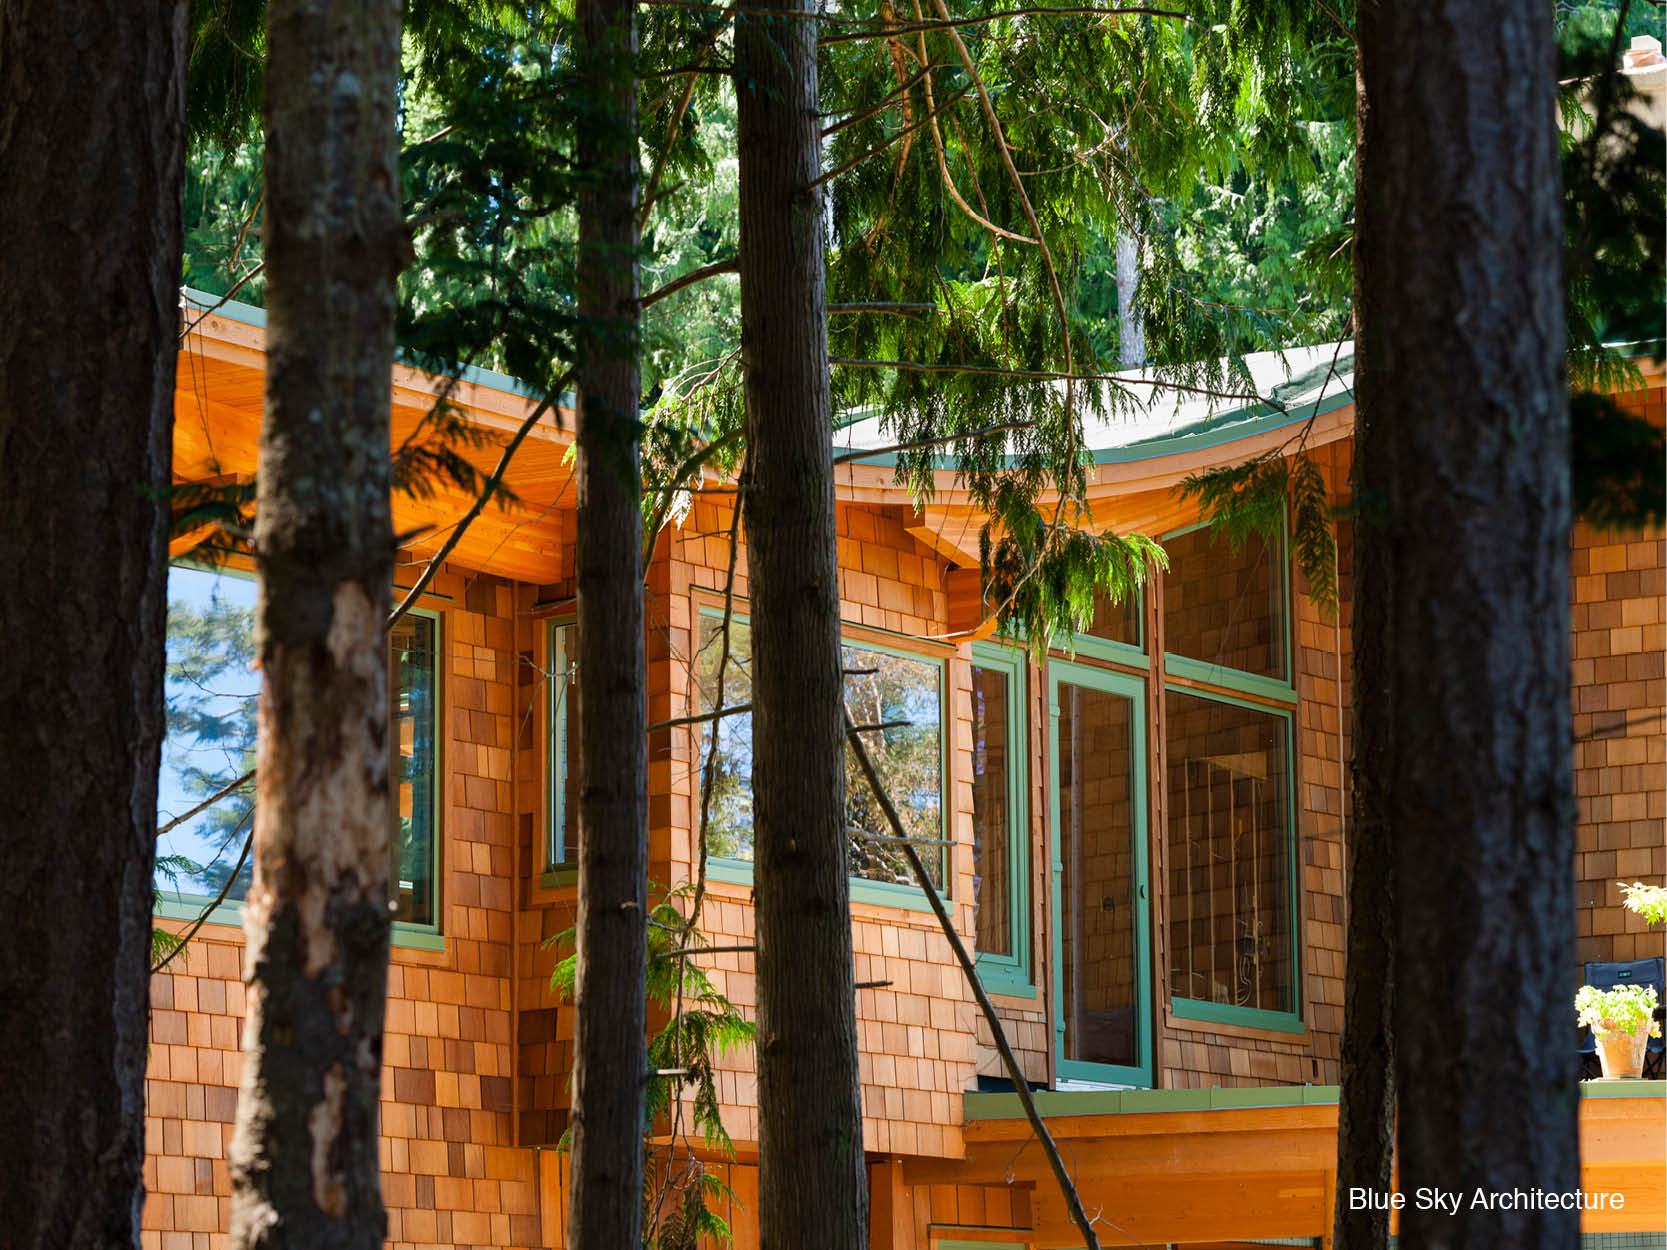 Natural materials in the forest architecture of Brigantine House